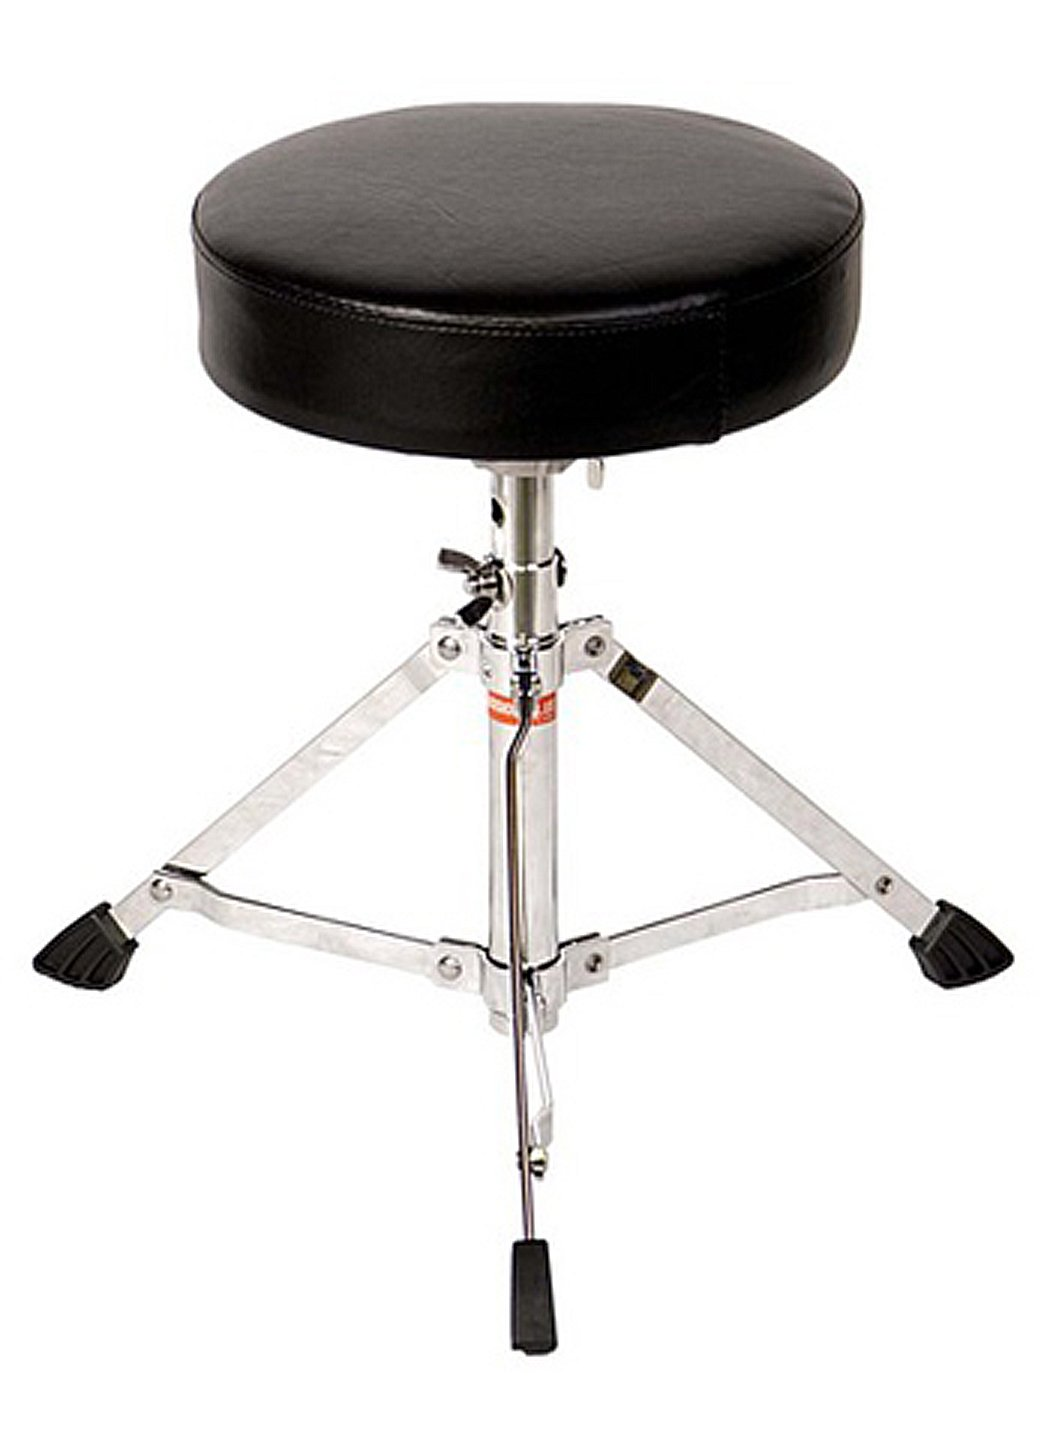 Percussion Plus 300T Single-Braced Junior Drum Throne KMC Music Inc